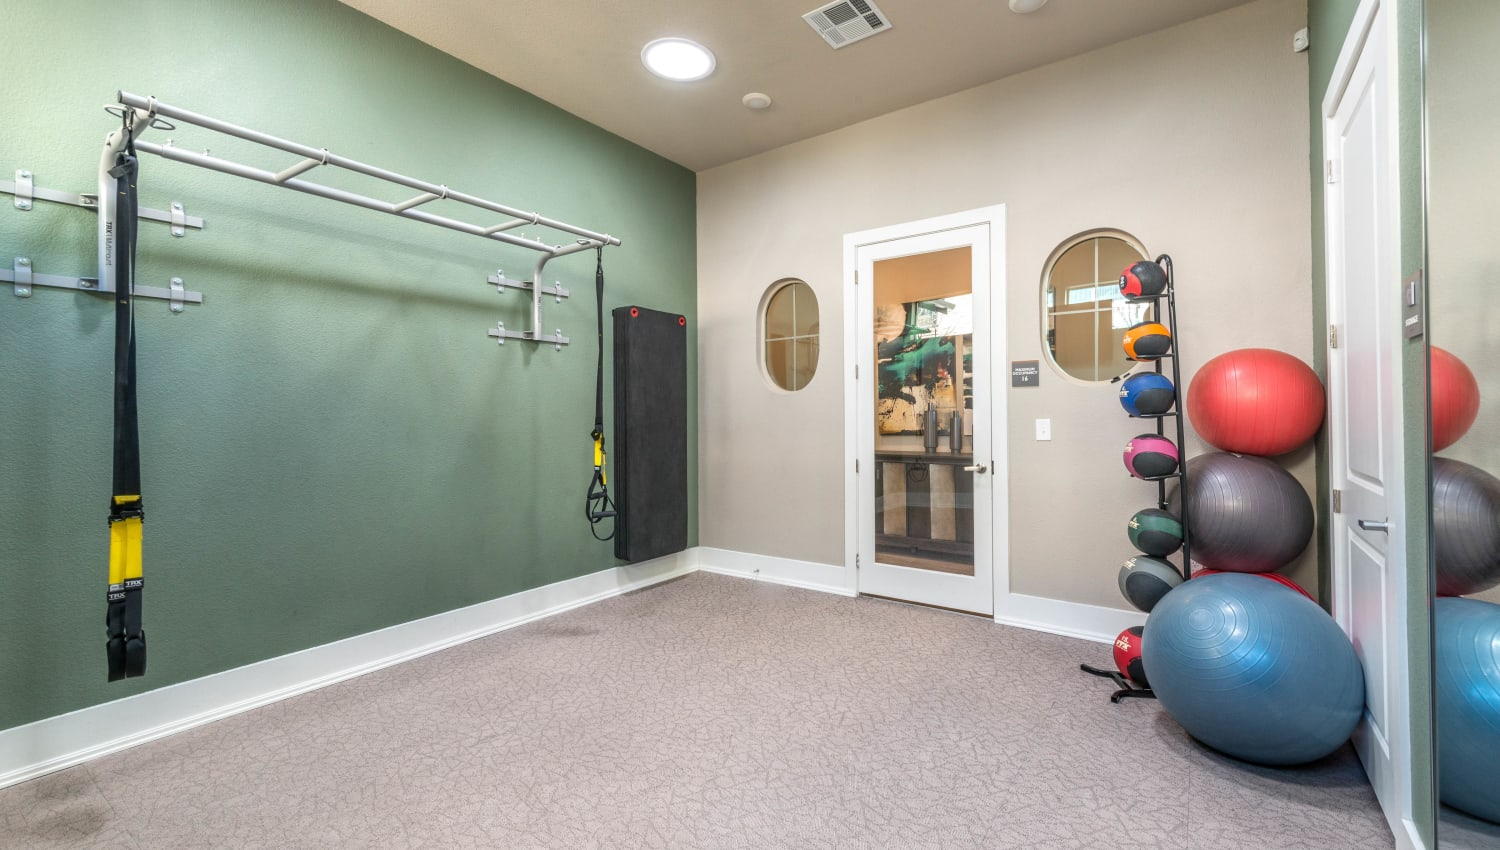 Exercise balls and stretching equipment in the yoga room at Olympus Waterford in Keller, Texas